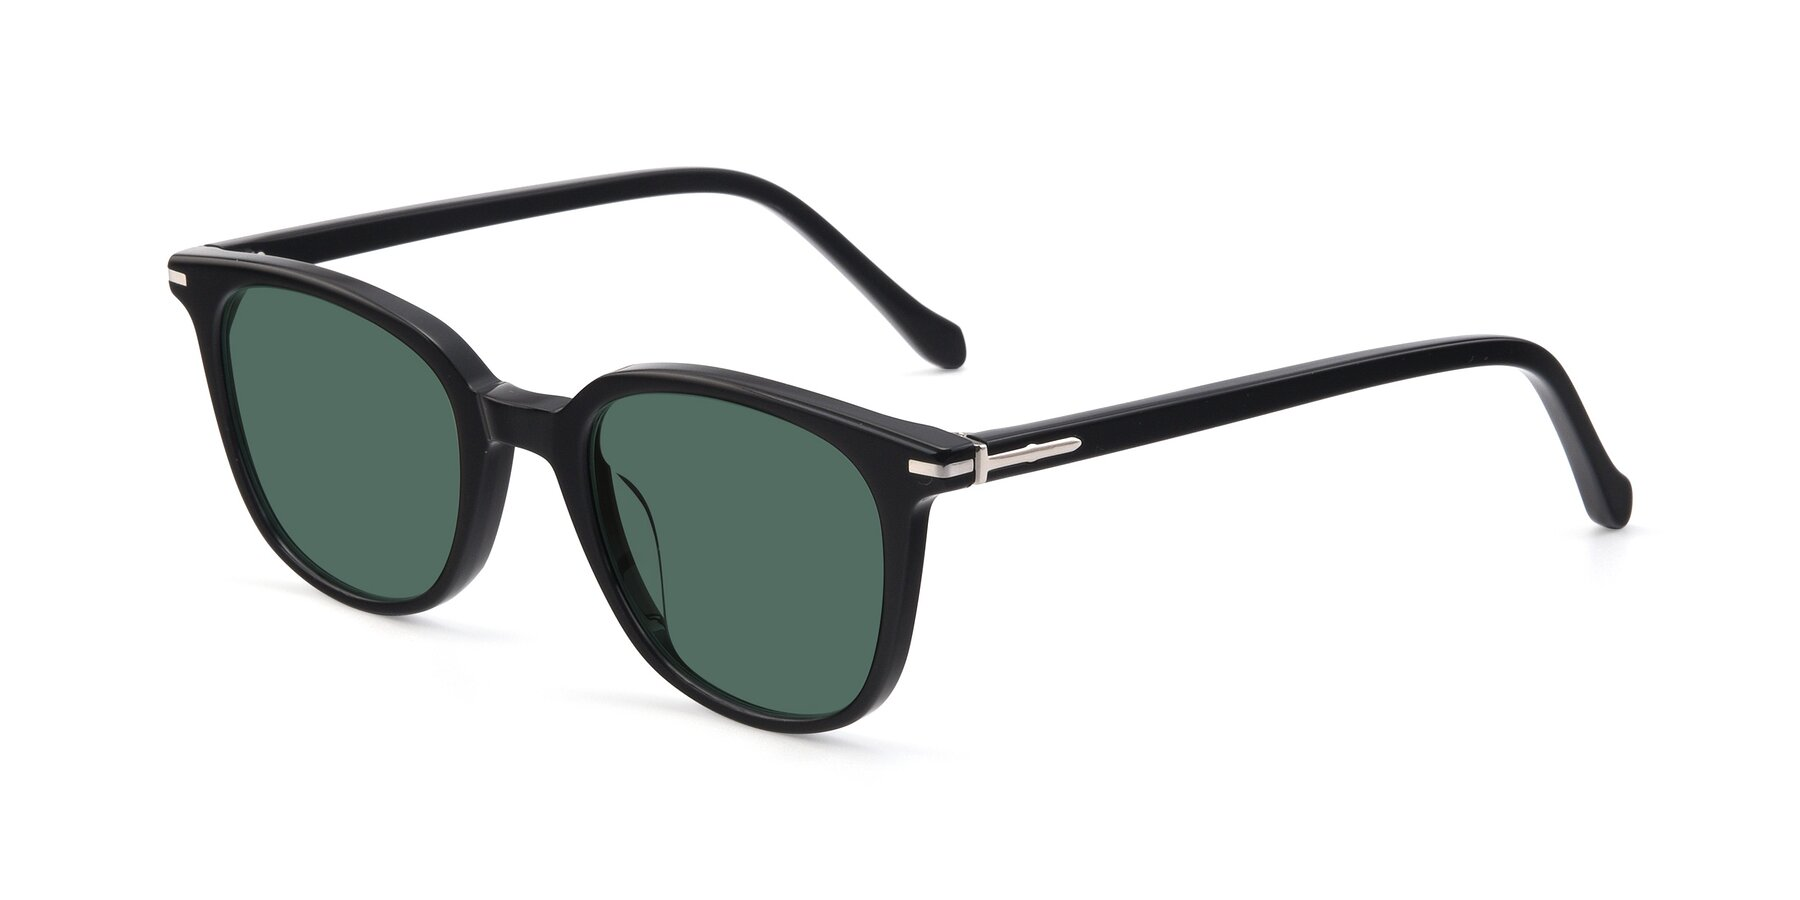 Angle of 17562 in Black with Green Polarized Lenses